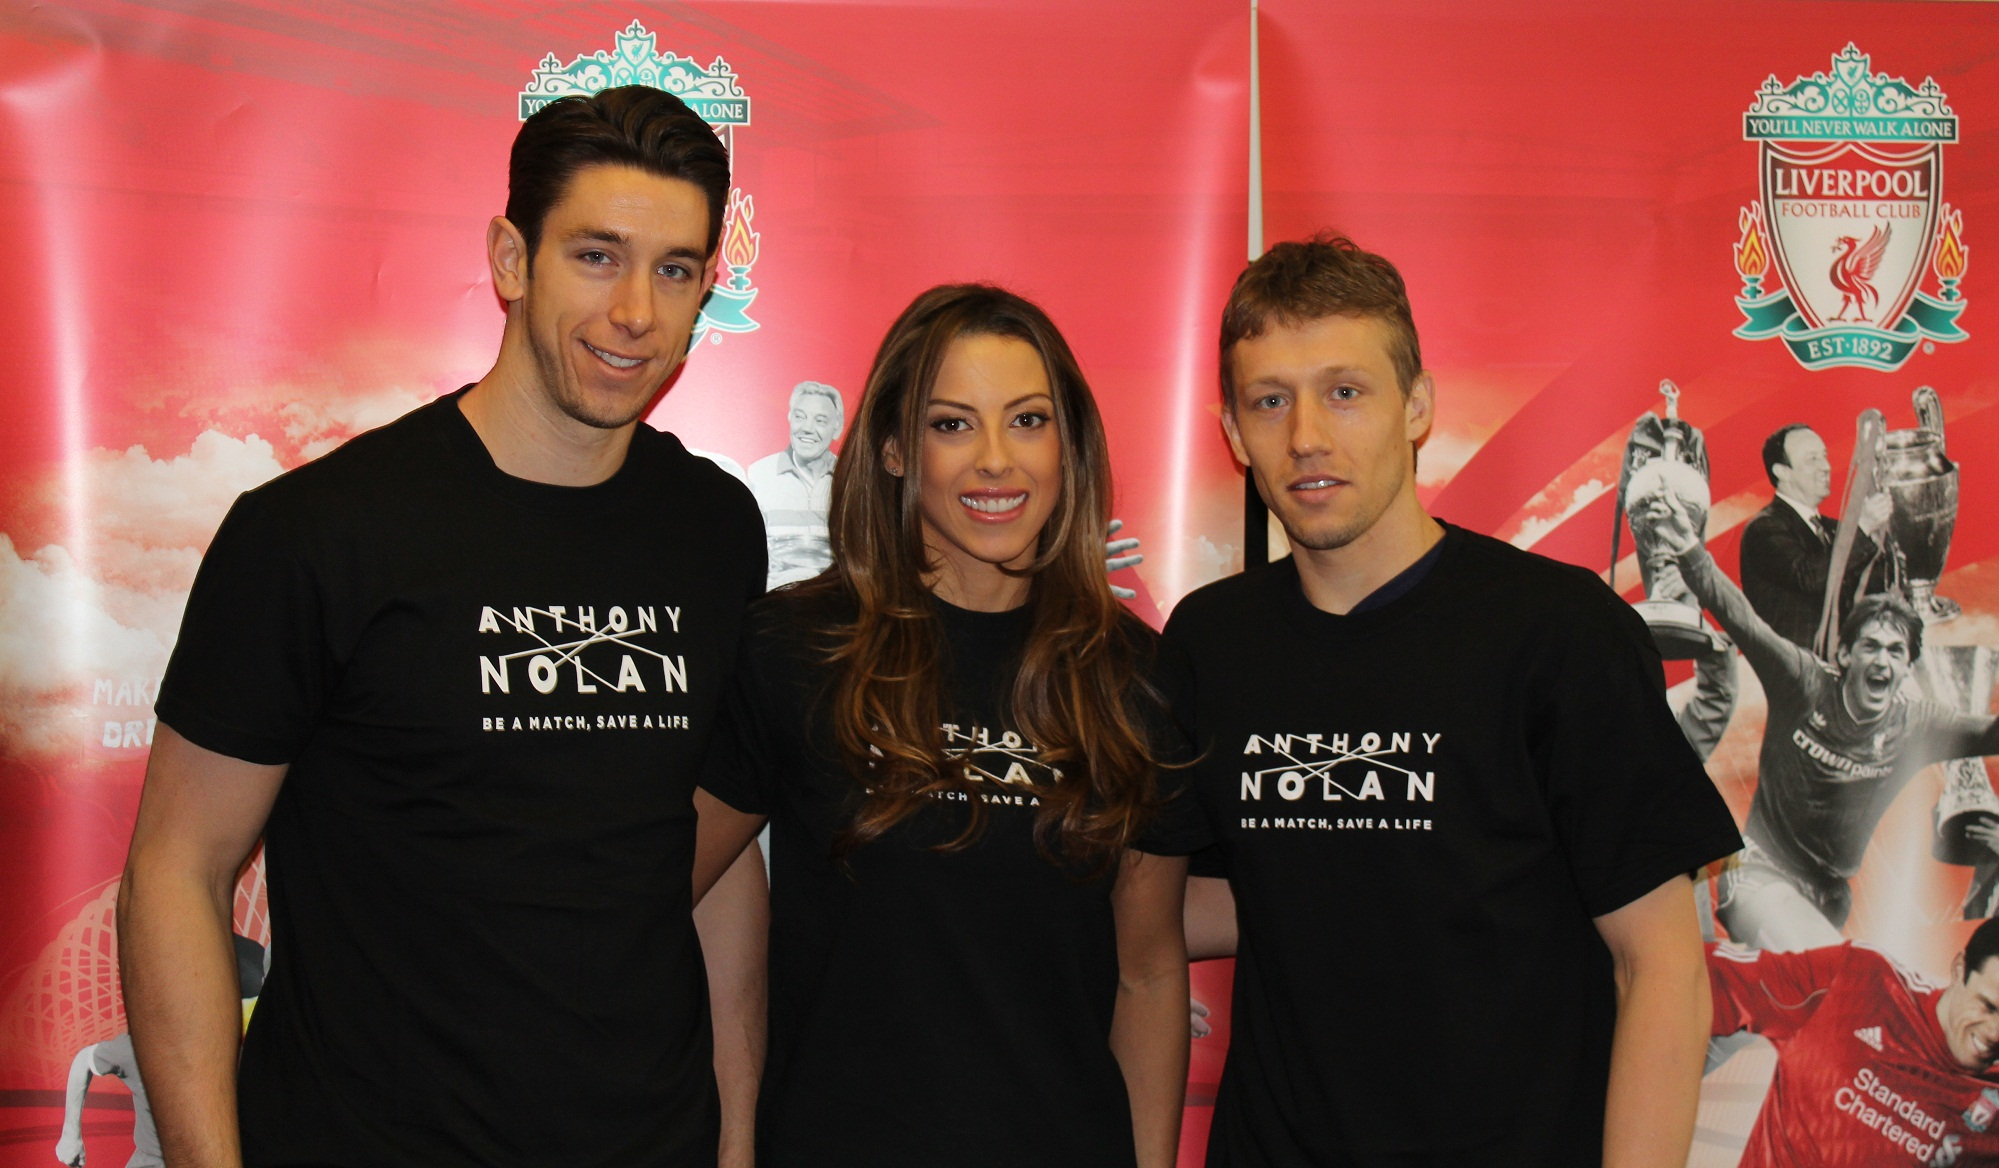 1 - (L-R) LFC goalkeeper, Brad Jones and partner Dani Lawrence with Lucas Leiva supporting the Anthony Nolan recruitment drive at Anfield on 25 March